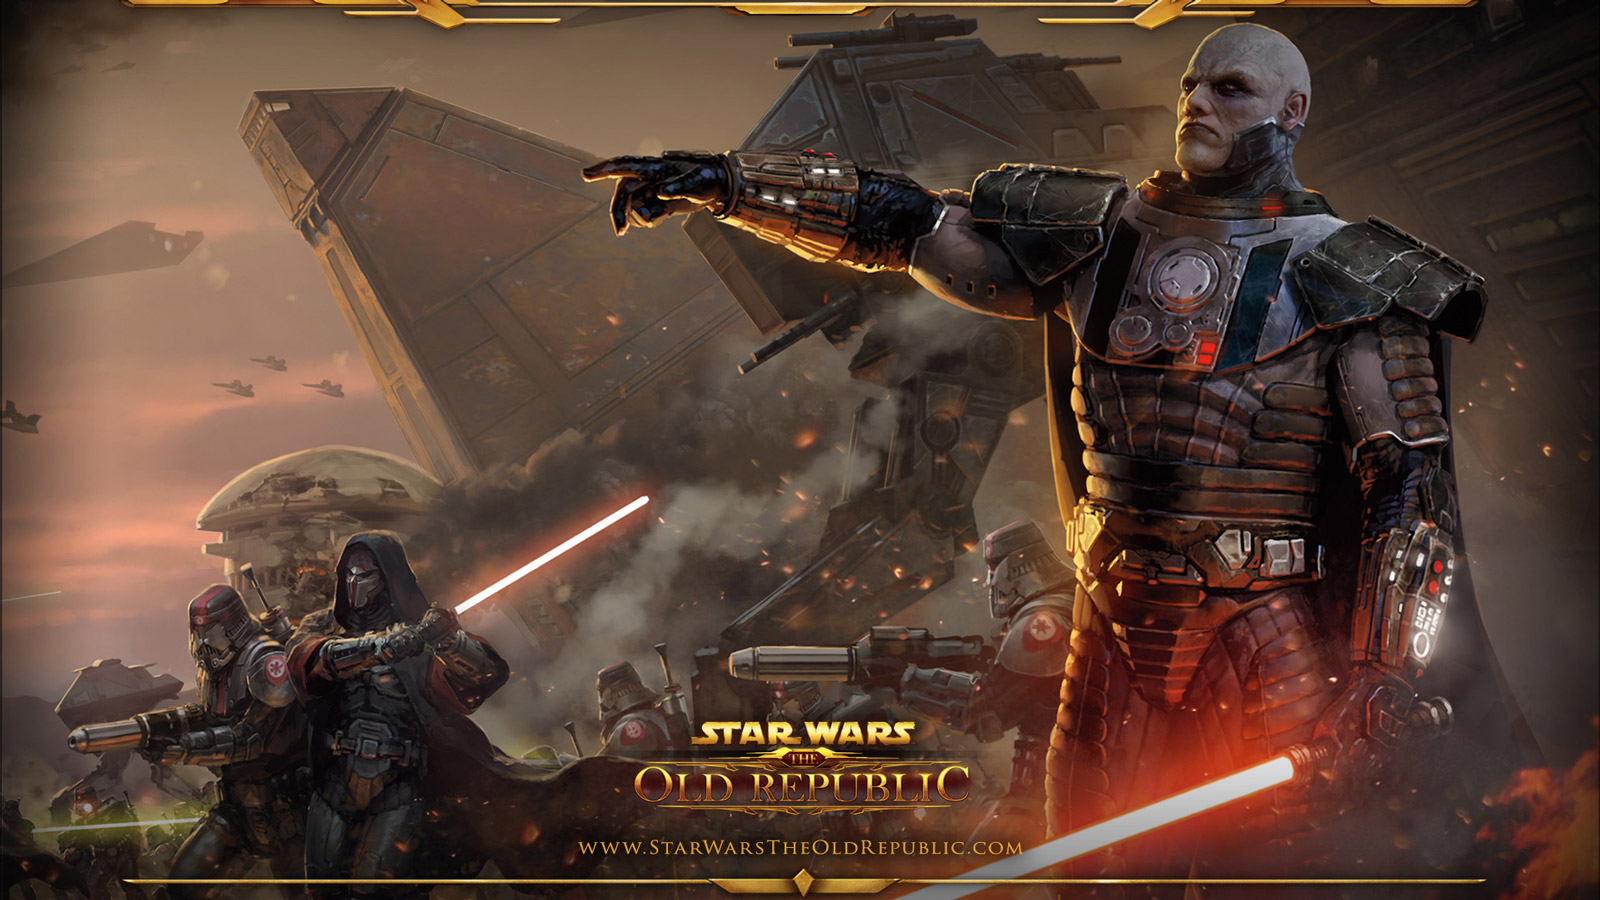 Free Star Wars: The Old Republic Wallpaper in 1600x900